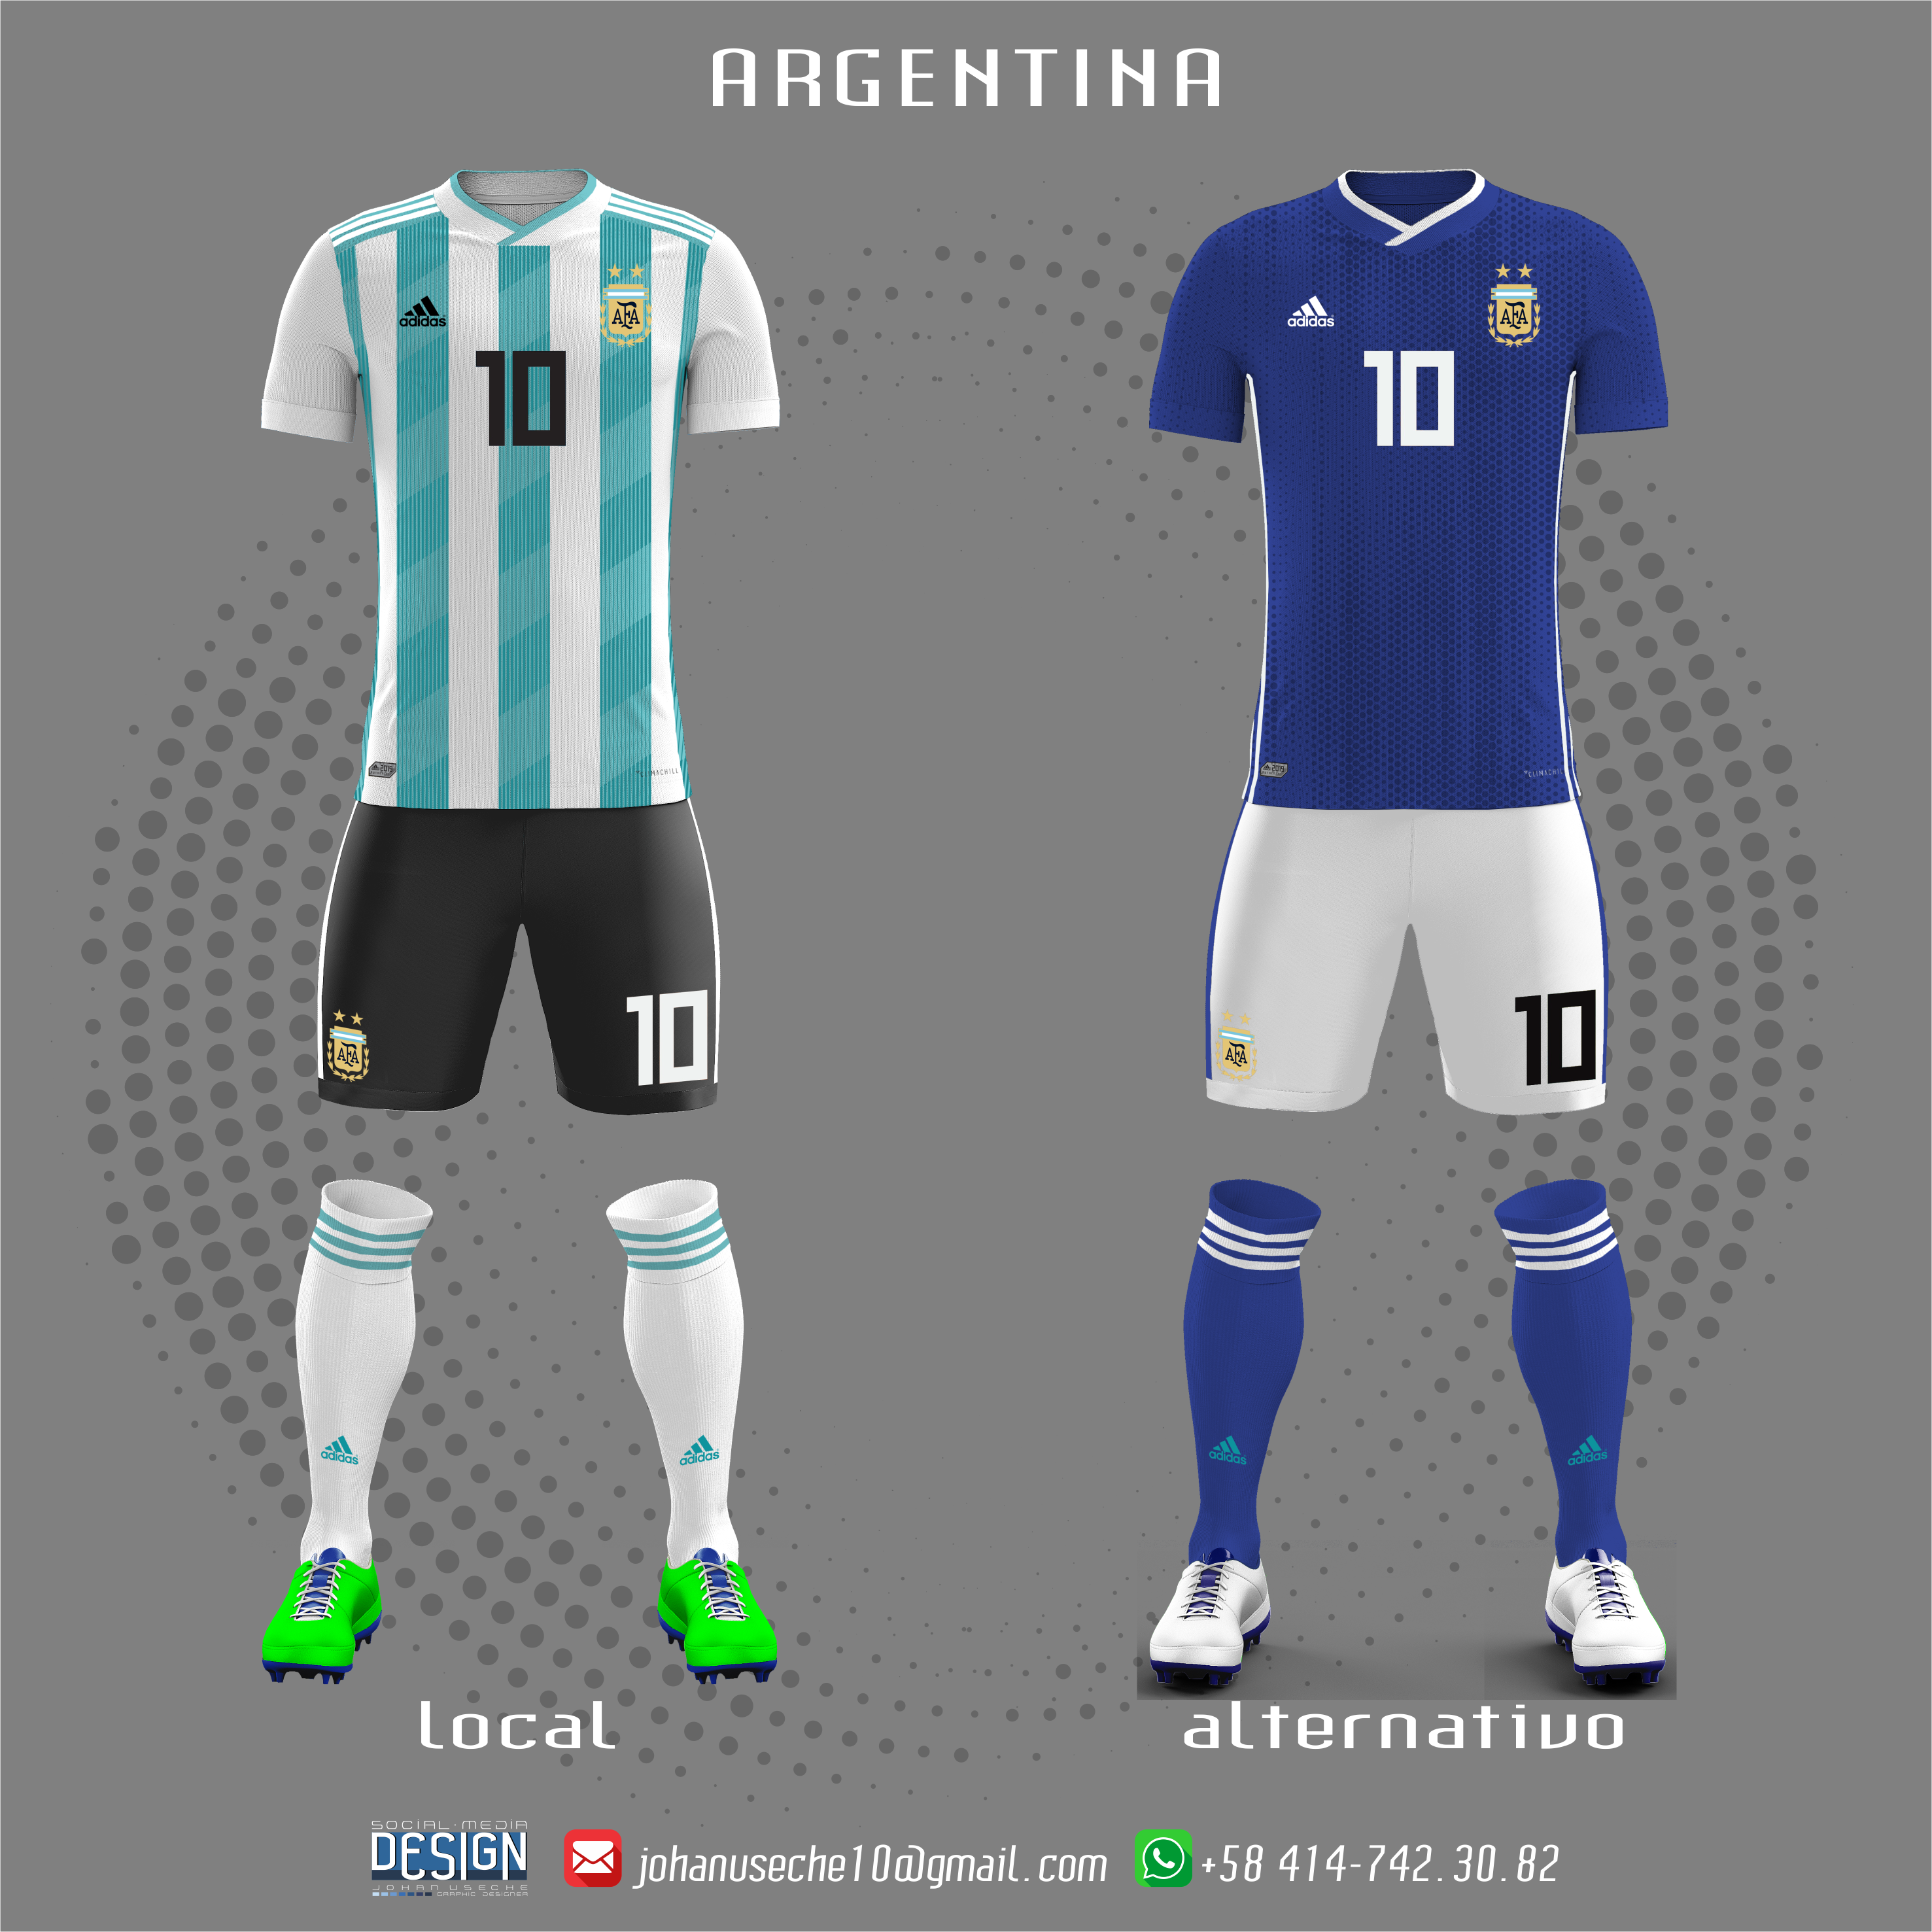 2bfbf0a84d3 kit Argentina copa américa 2019 (no oficial) best of canmebol copa of  America